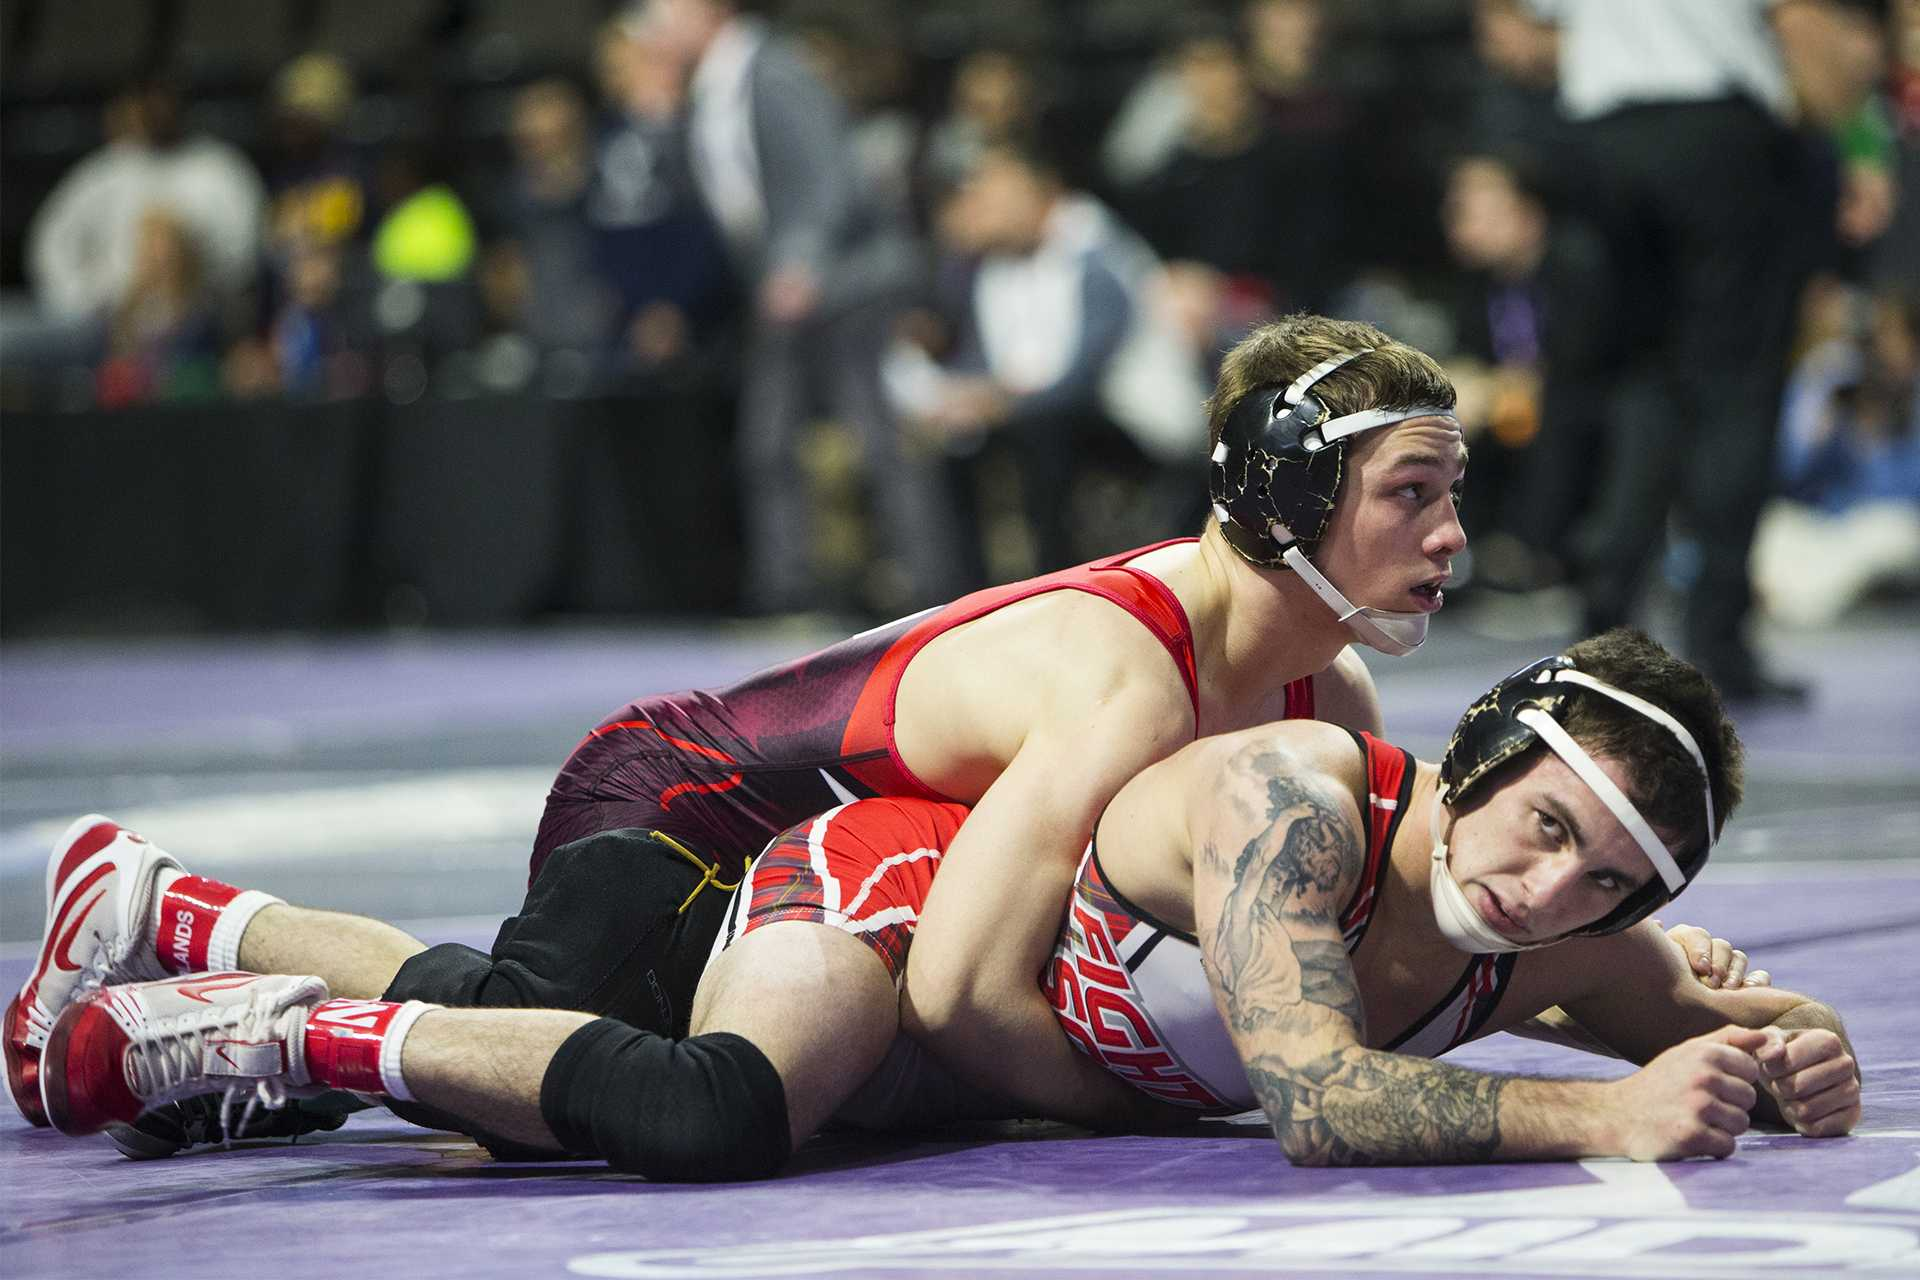 Iowa's 125 pound Spencer Lee wrestles during the second session of the 55th Annual Midlands Championships in the Sears Centre in Hoffman Estates, Illinois, on Friday, Dec. 29, 2017. (Joseph Cress/The Daily Iowan)